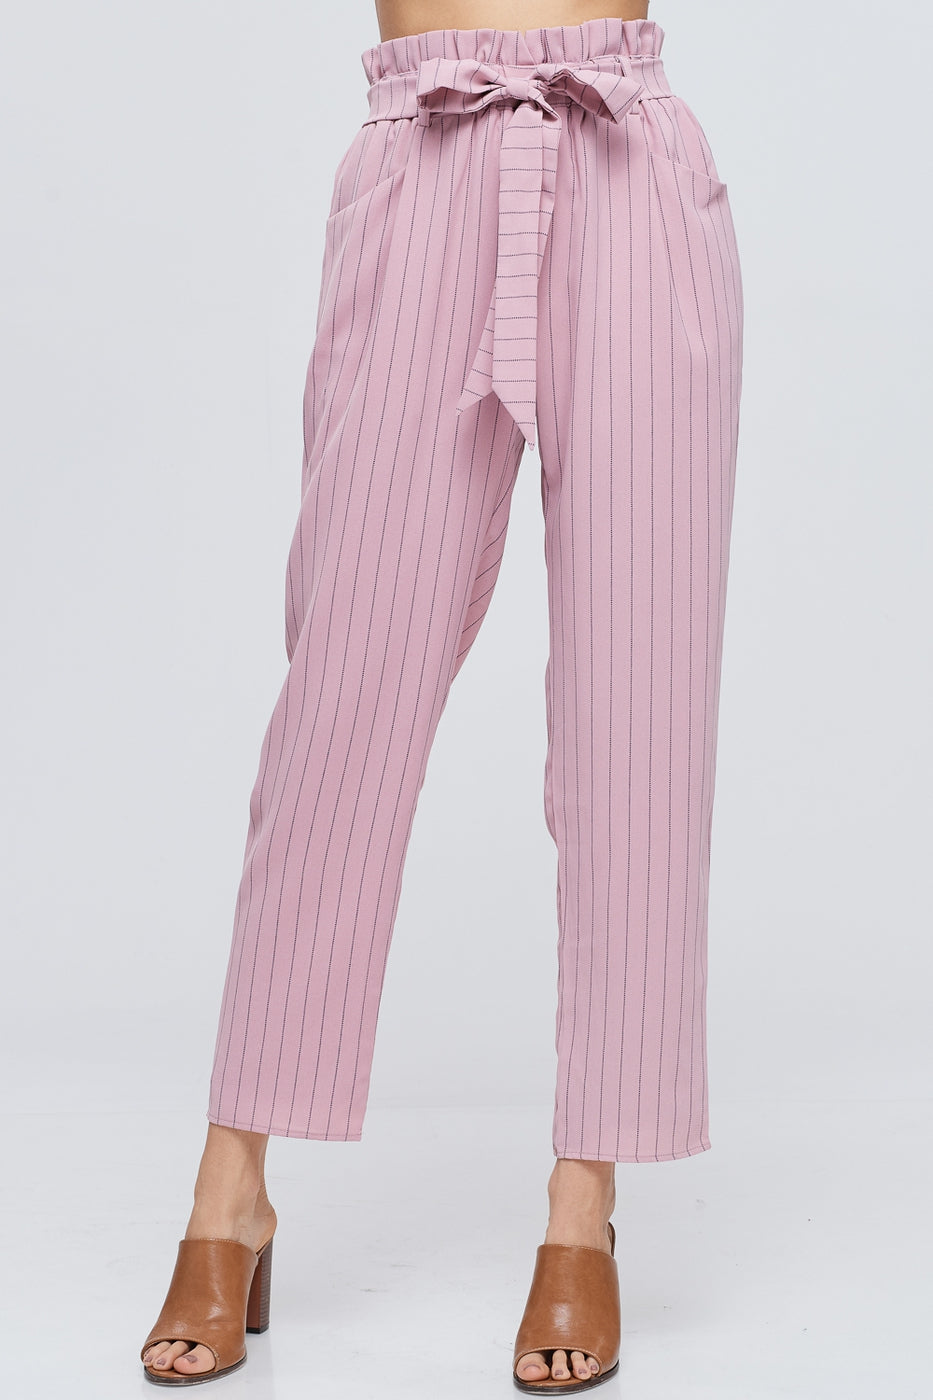 Pretty Stripe Paperbag Pants With Waist Tie In Mauve Siin Bees